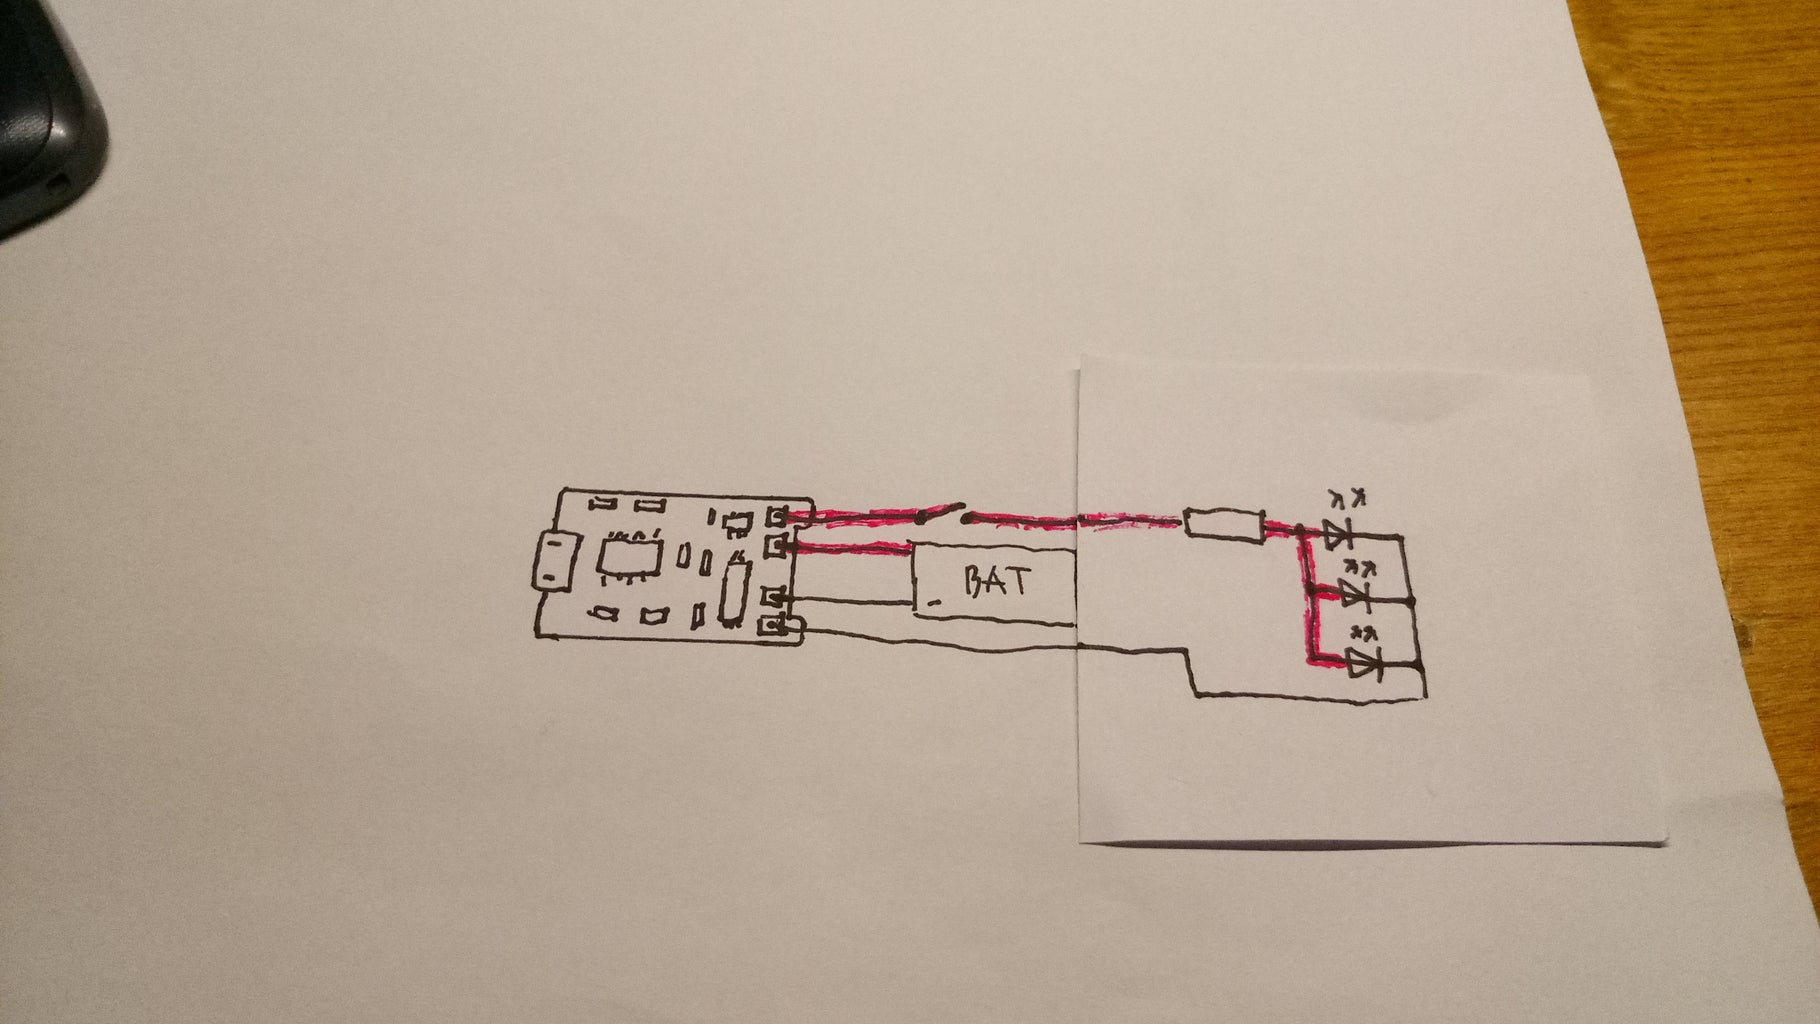 Schematic and Component's